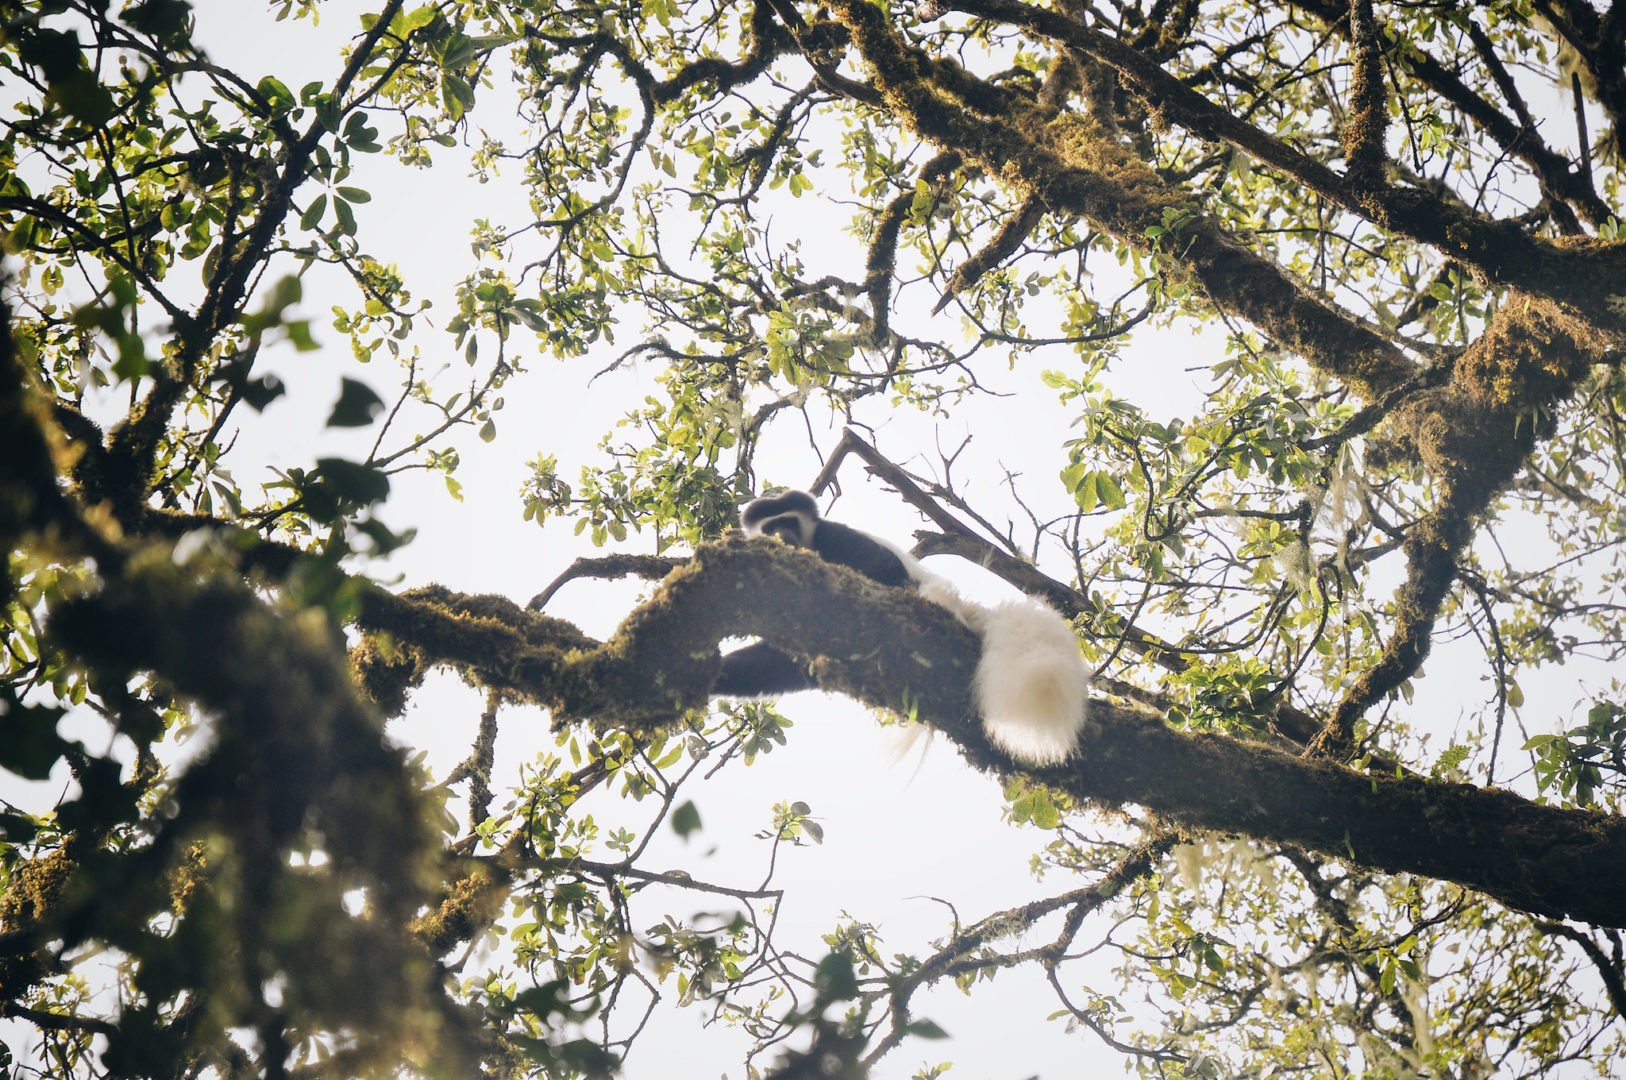 A monkey living in the trees of Mount Kilimanjaro.